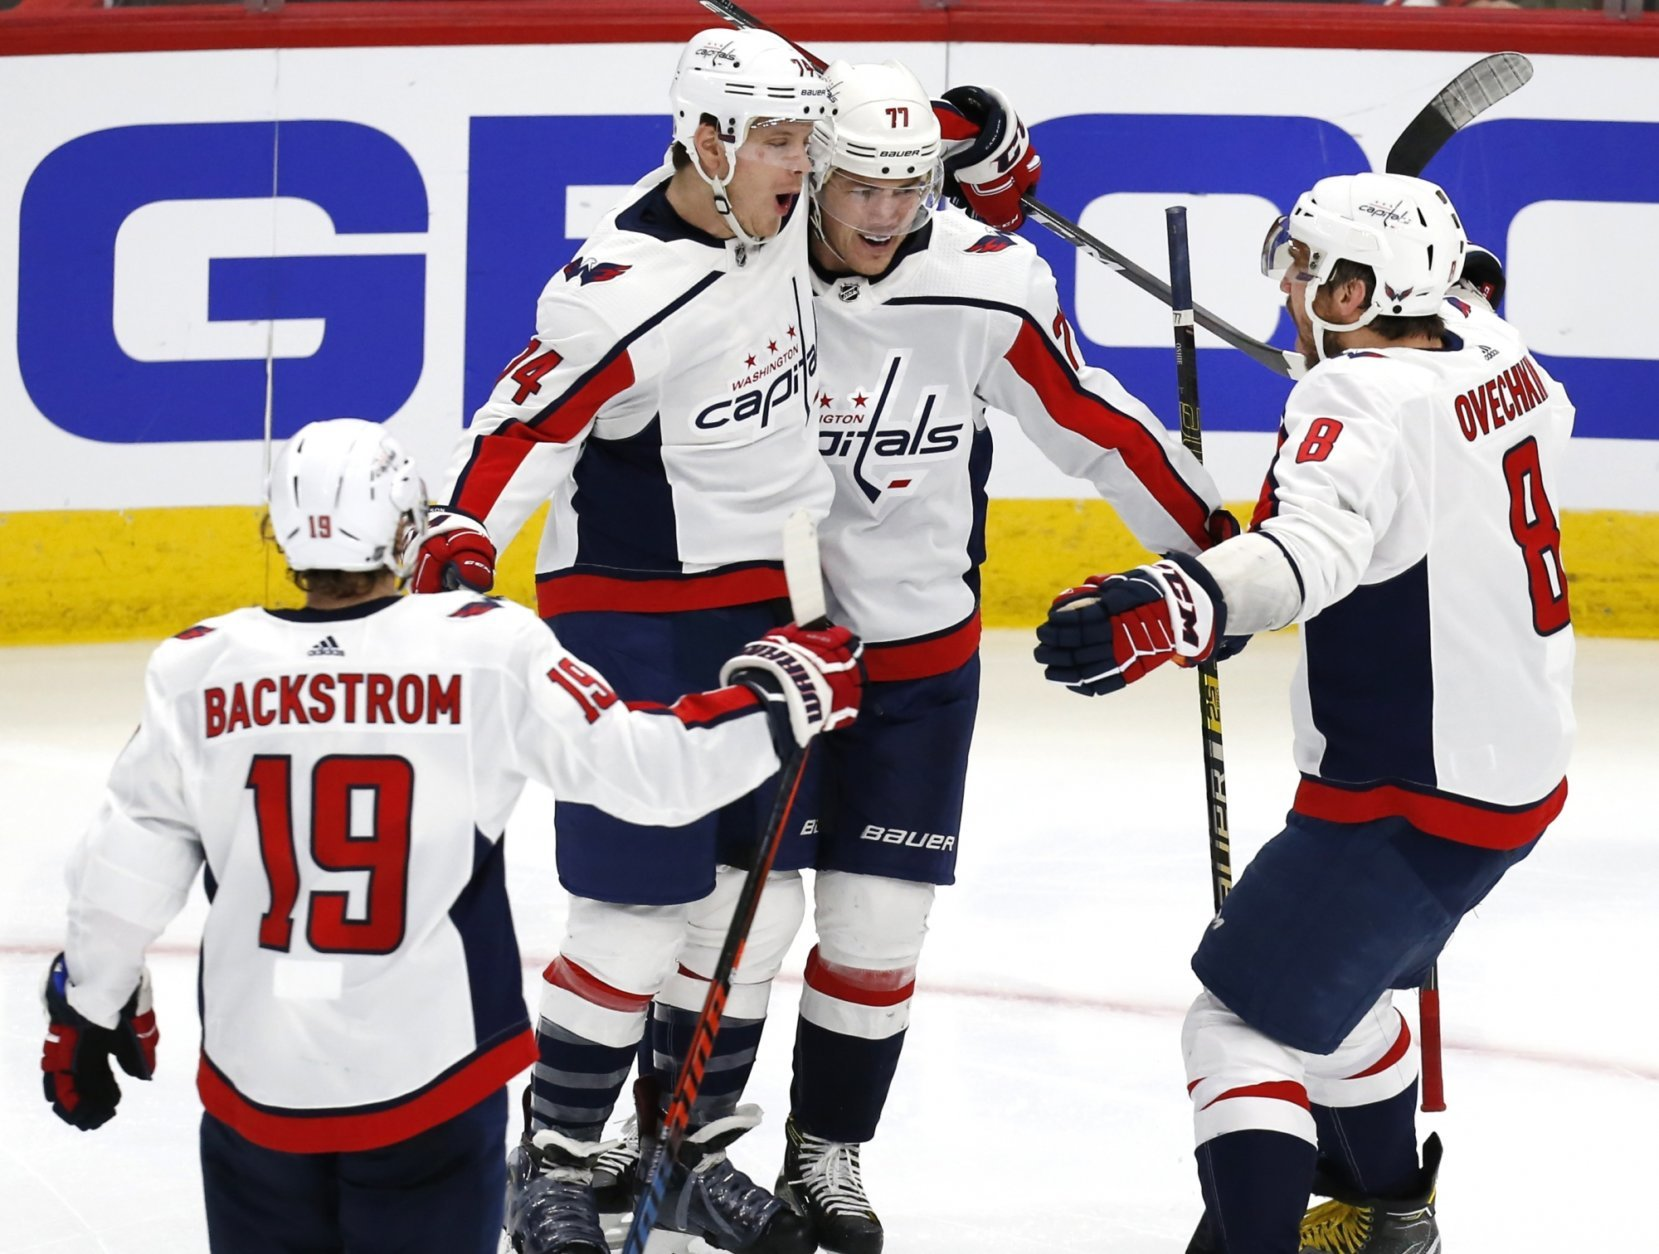 Second from left Washington Capitals defenseman John Carlson (74) celebrates with teammates after his goal against the Chicago Blackhawks, during the third period of an NHL hockey game Sunday, Jan. 20, 2019, in Chicago. (AP Photo Nuccio DiNuzzo)